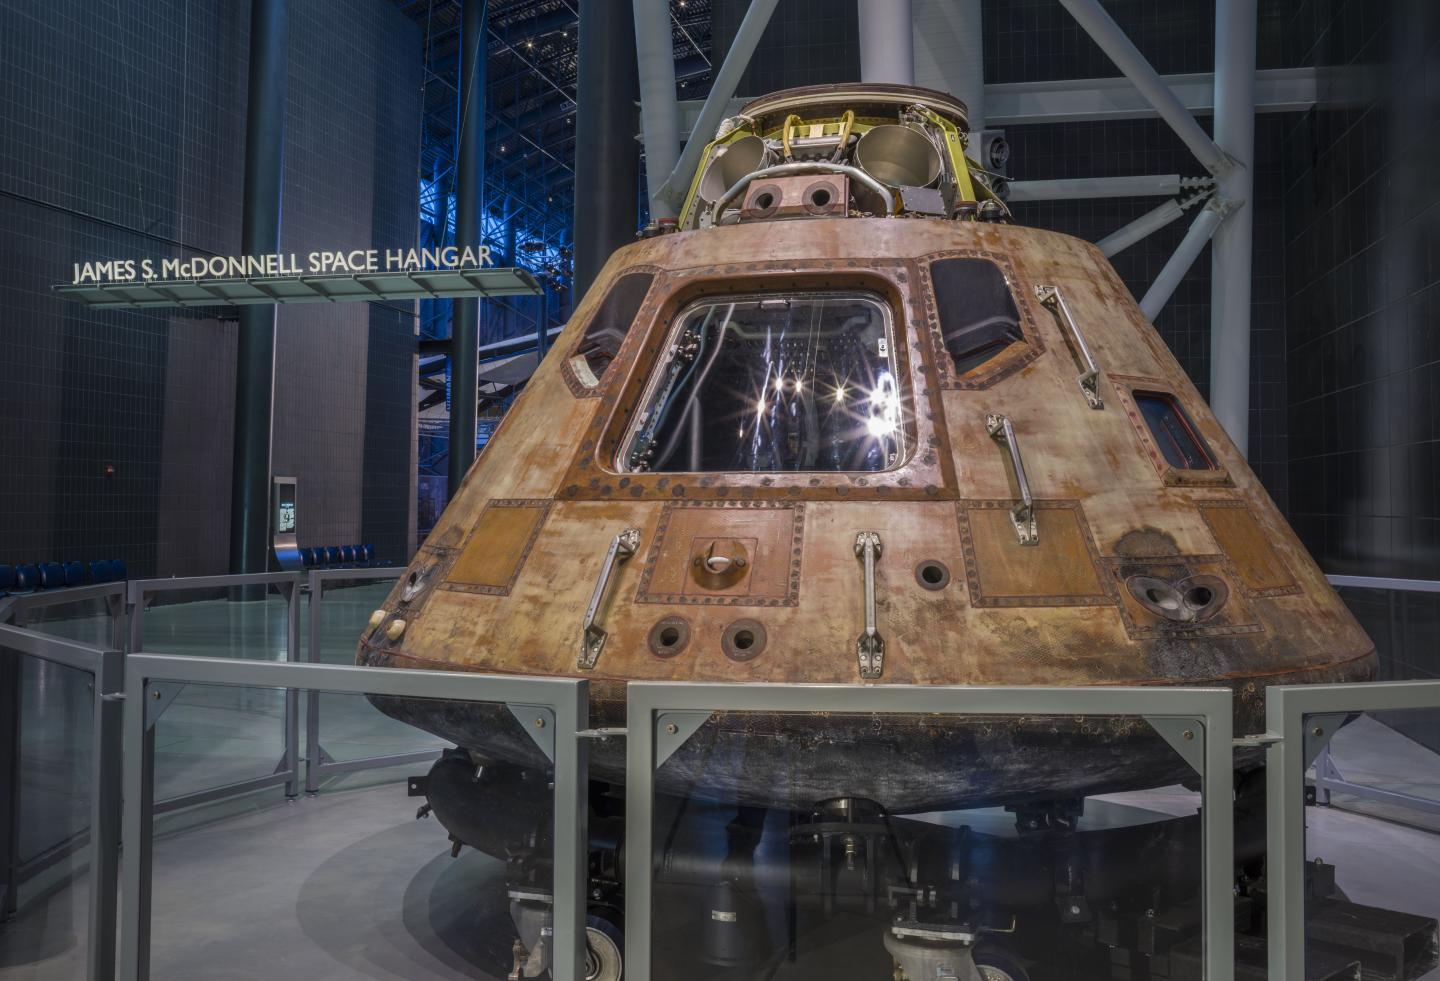 A conical shaped command module with an orange patina and a small window on display in the museum.